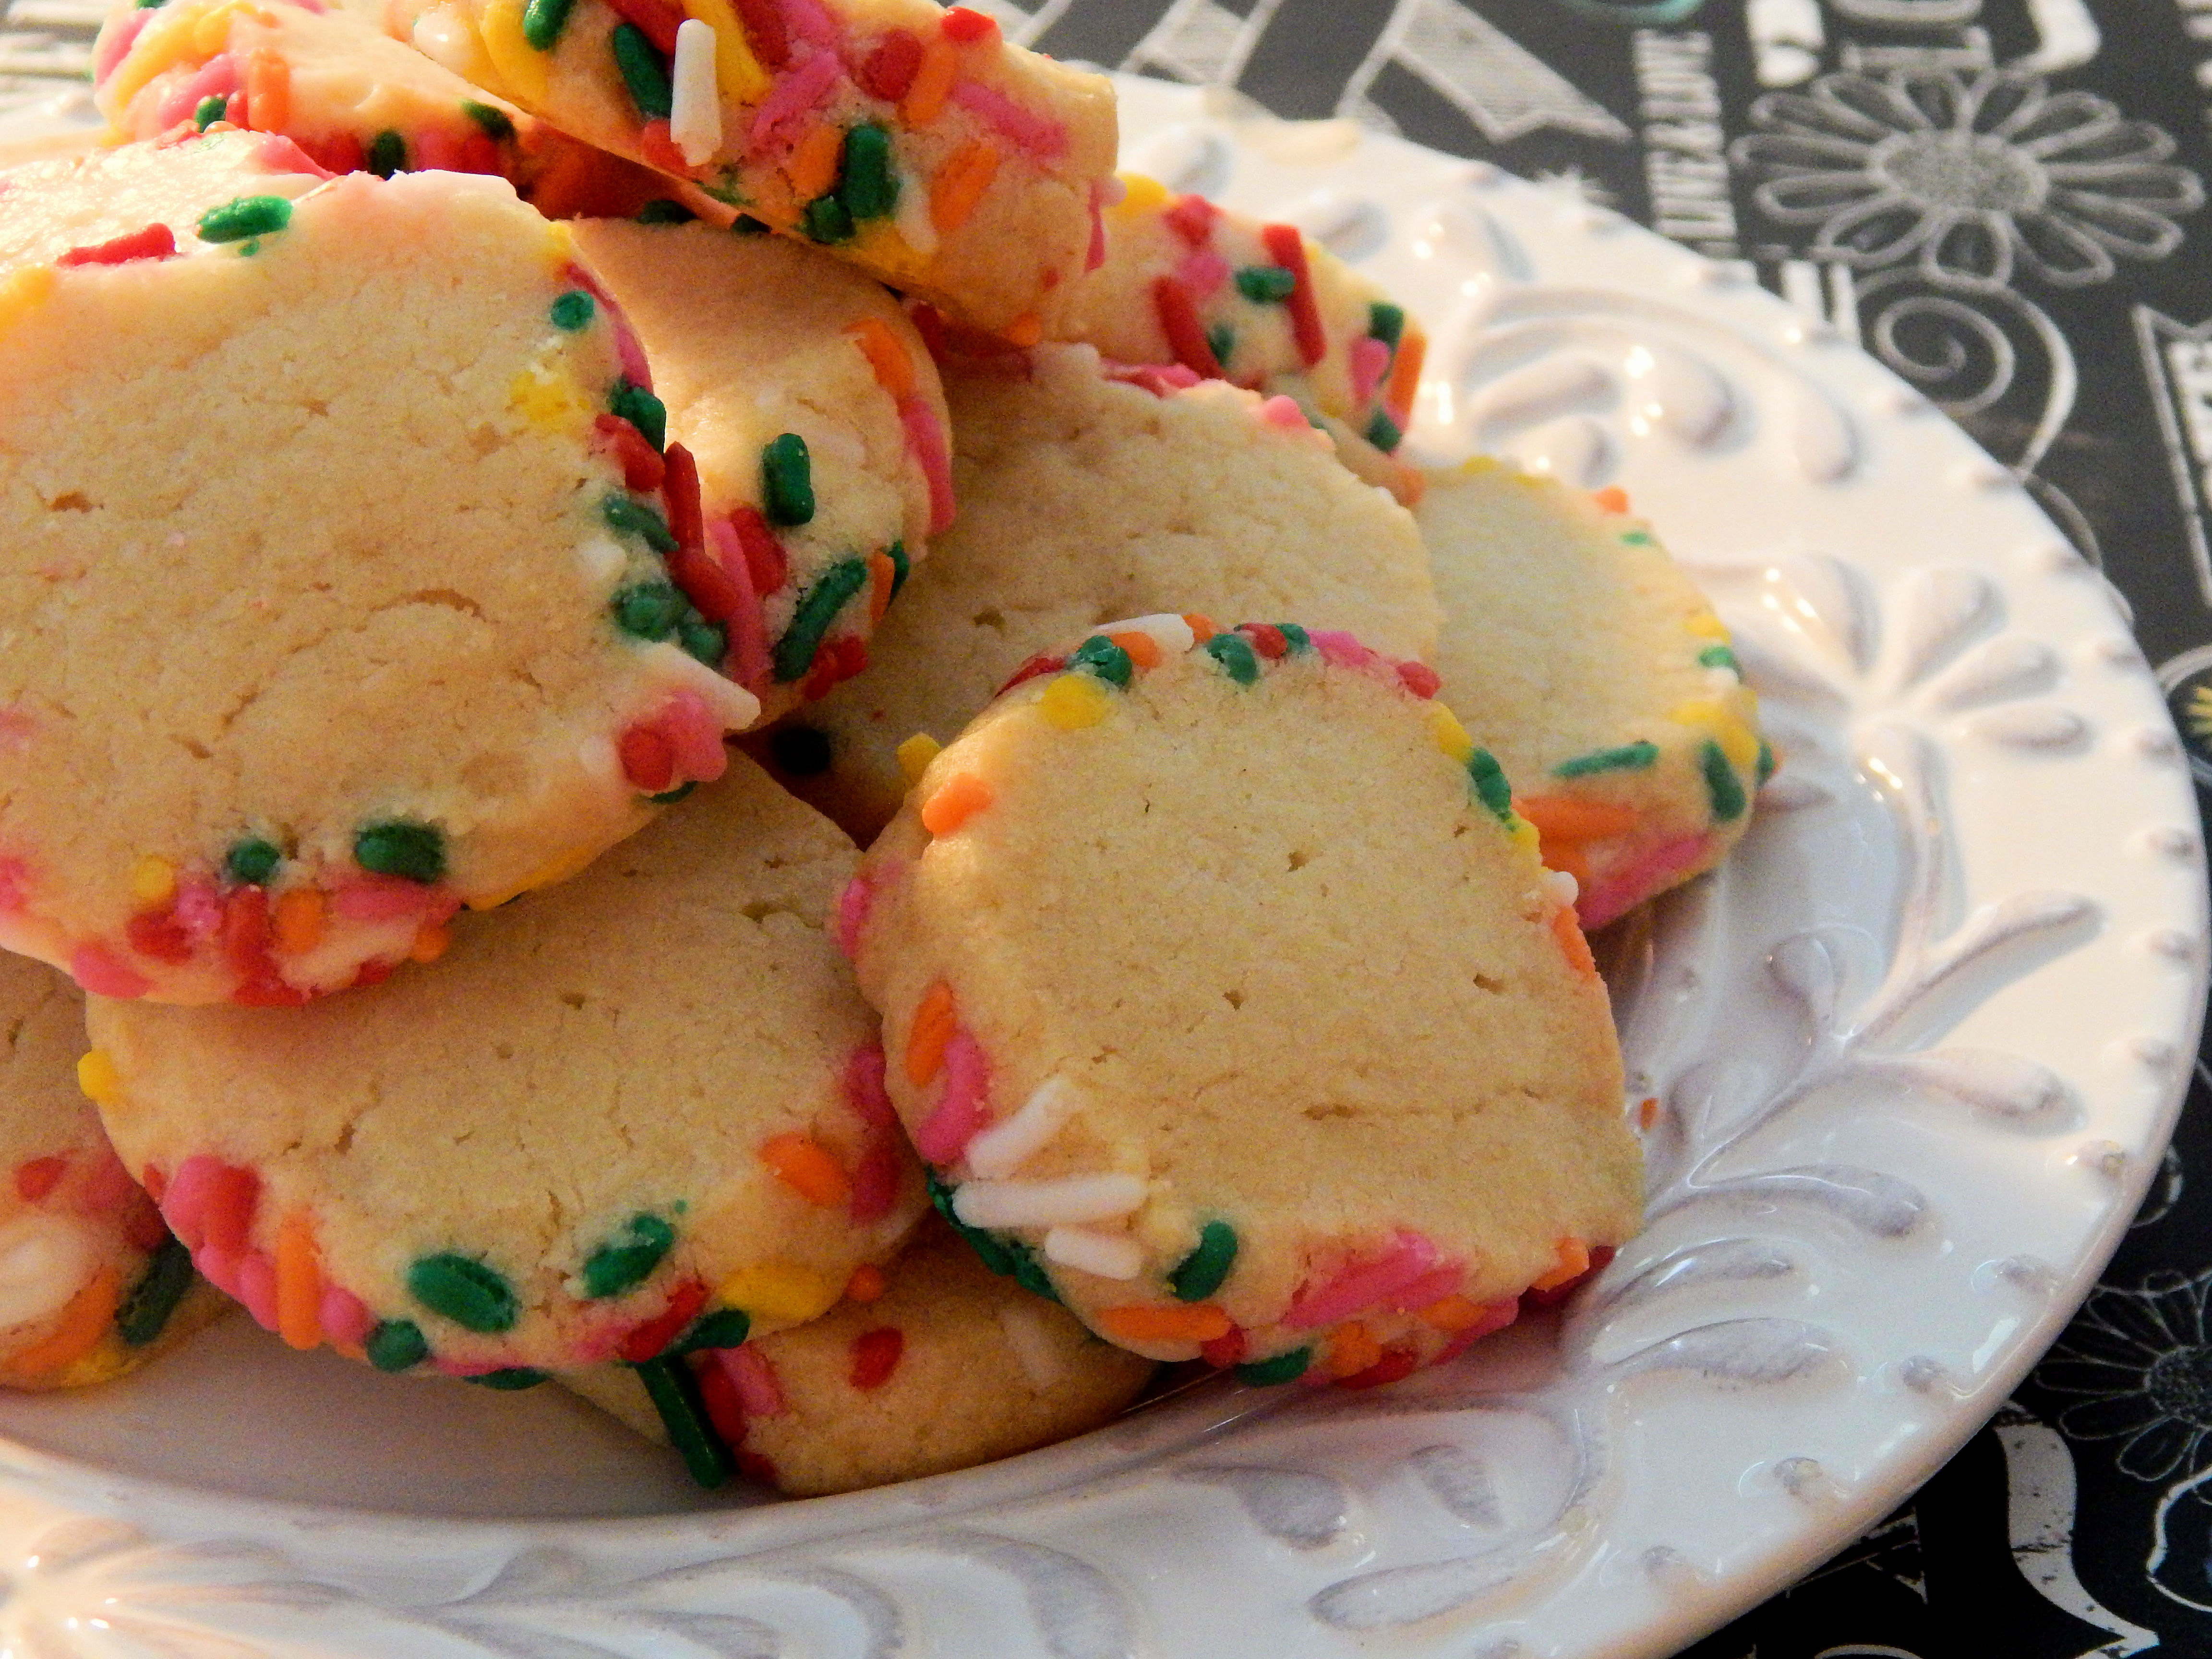 Freezer Butter Cookies